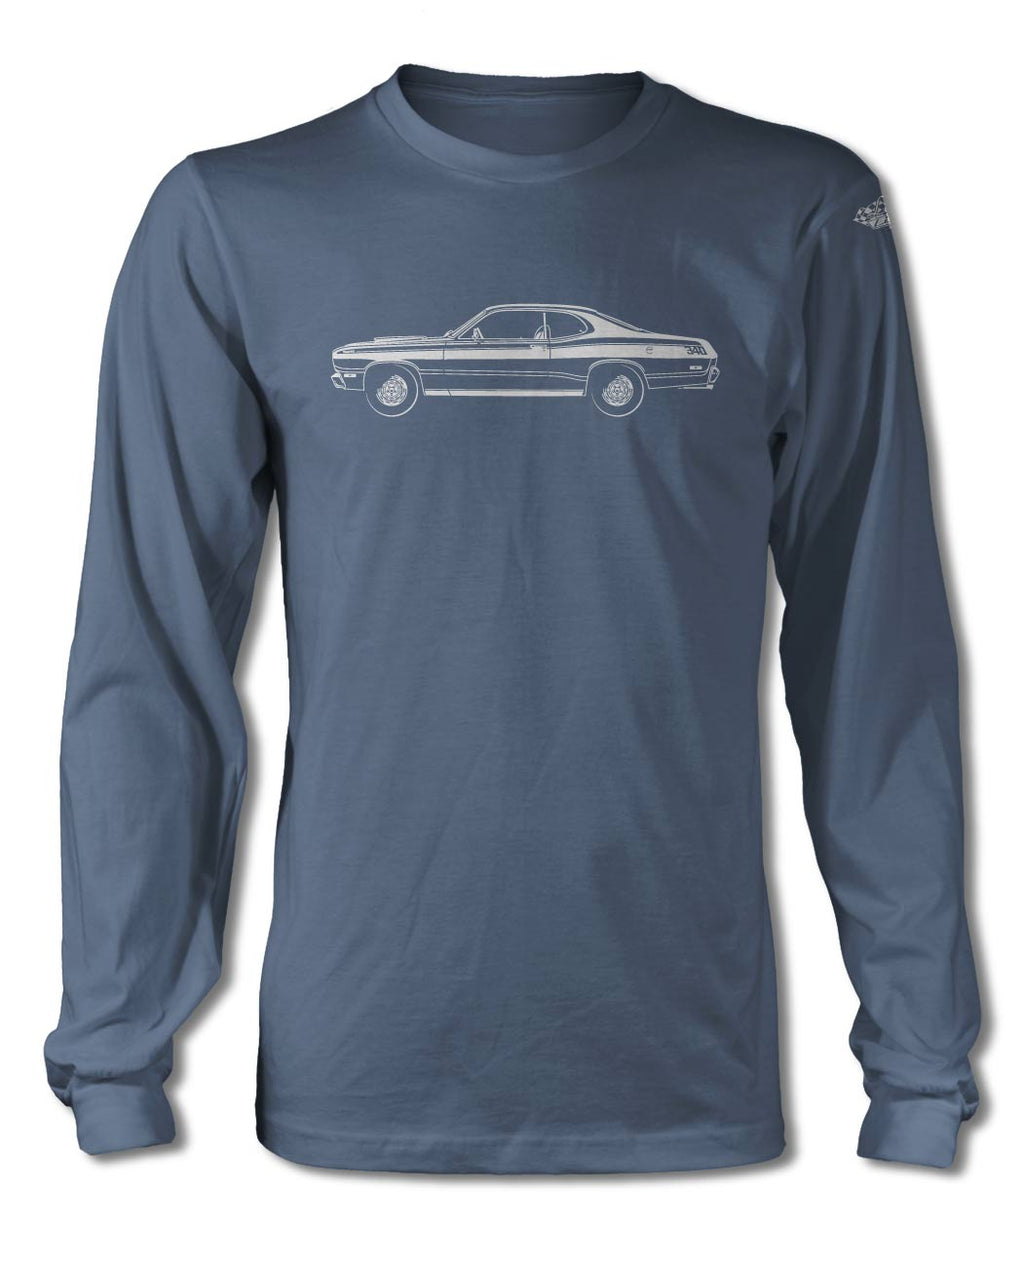 1972 Plymouth Duster Coupe T-Shirt - Long Sleeves - Side View